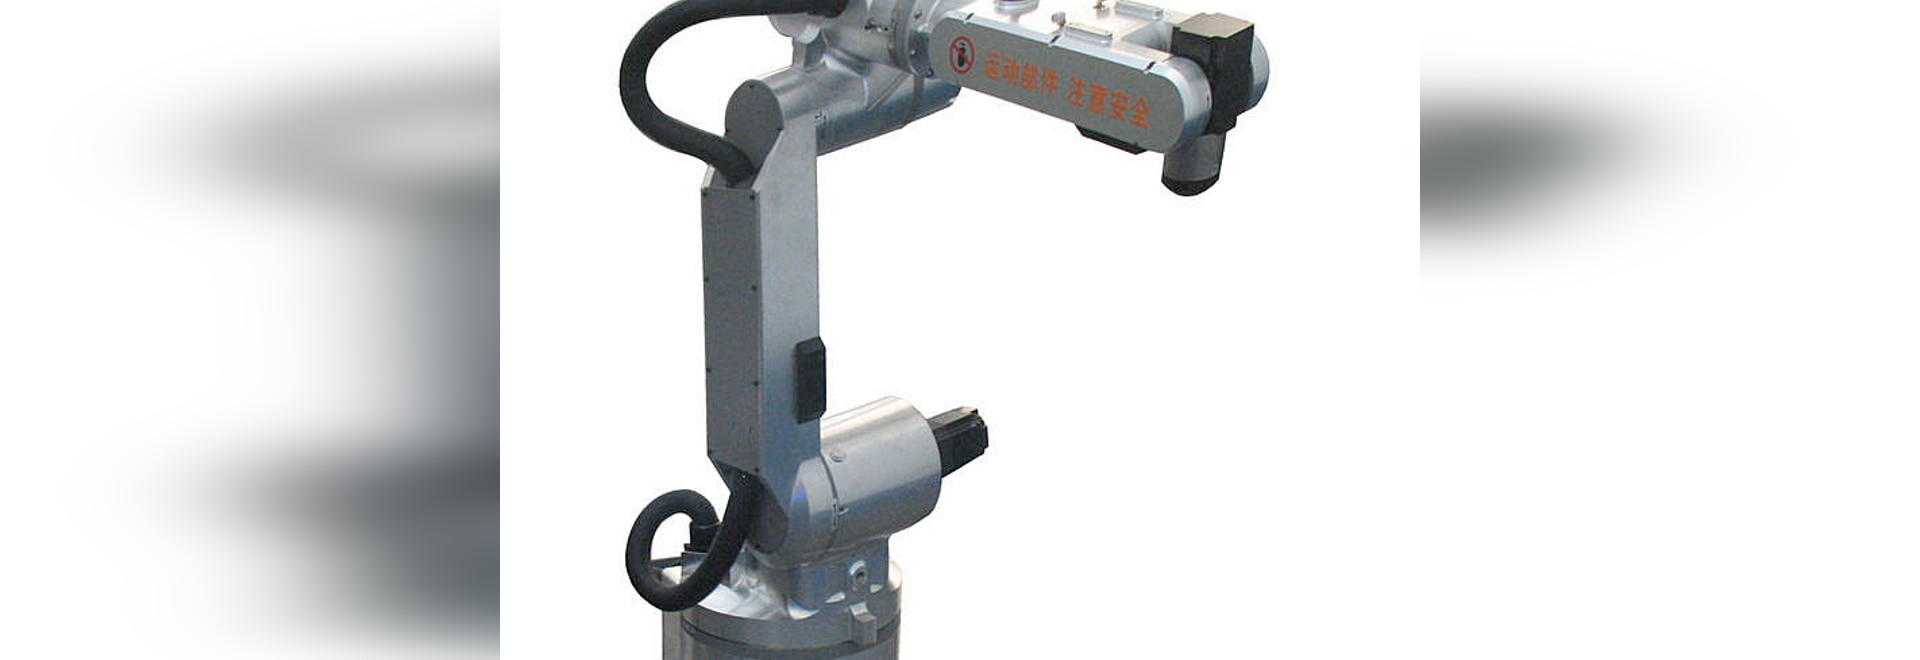 NEW : reach beyond industrial applications => Articulated robot GRB Series / 6-axis / pick-and-place !